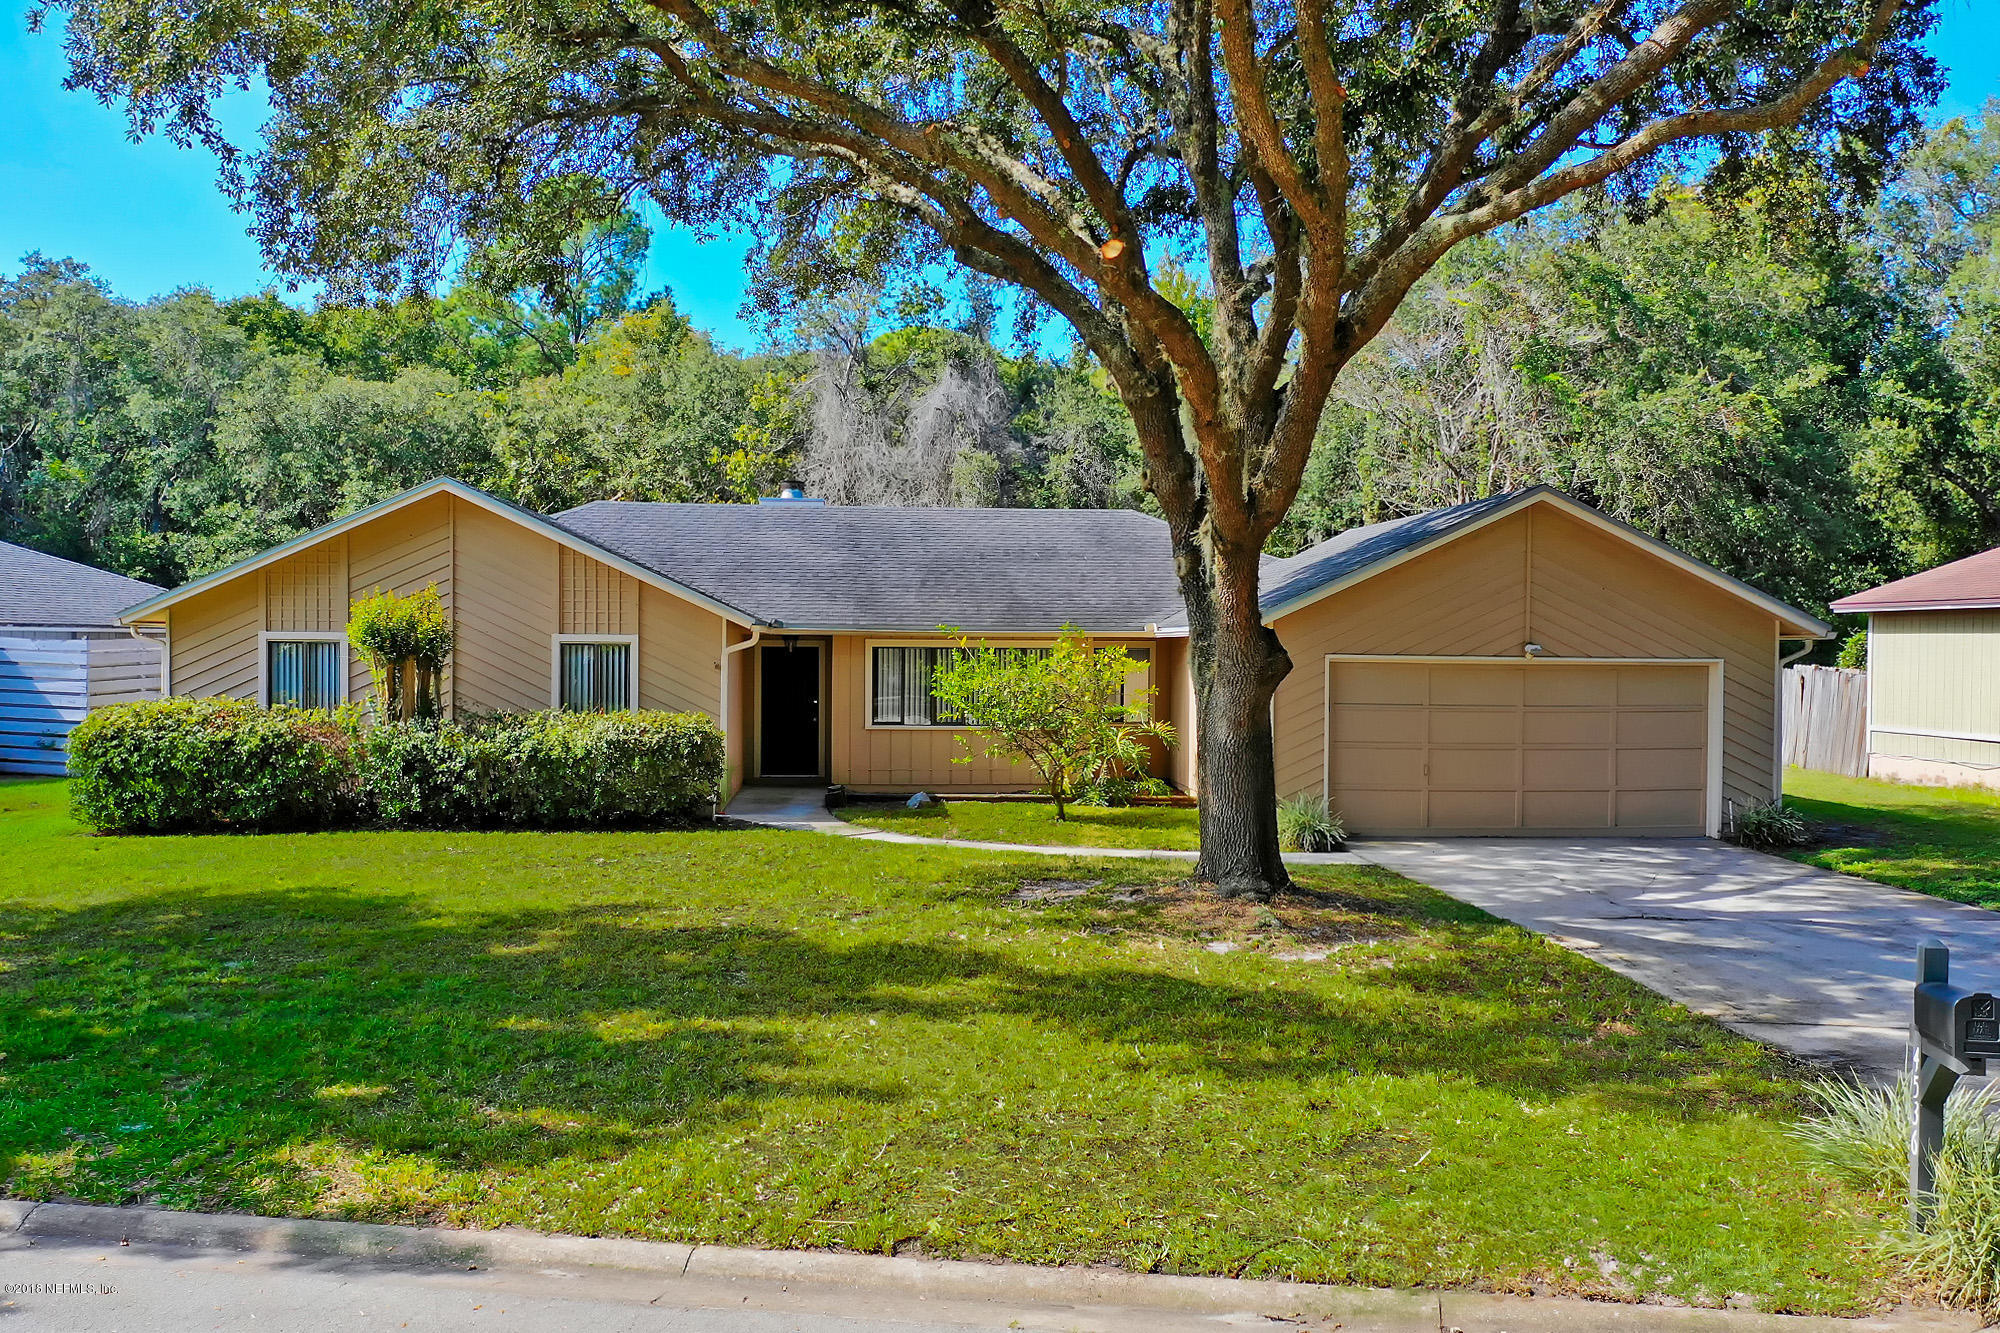 4536 WHISPERING INLET, JACKSONVILLE, FLORIDA 32277, 3 Bedrooms Bedrooms, ,2 BathroomsBathrooms,Residential - single family,For sale,WHISPERING INLET,965283